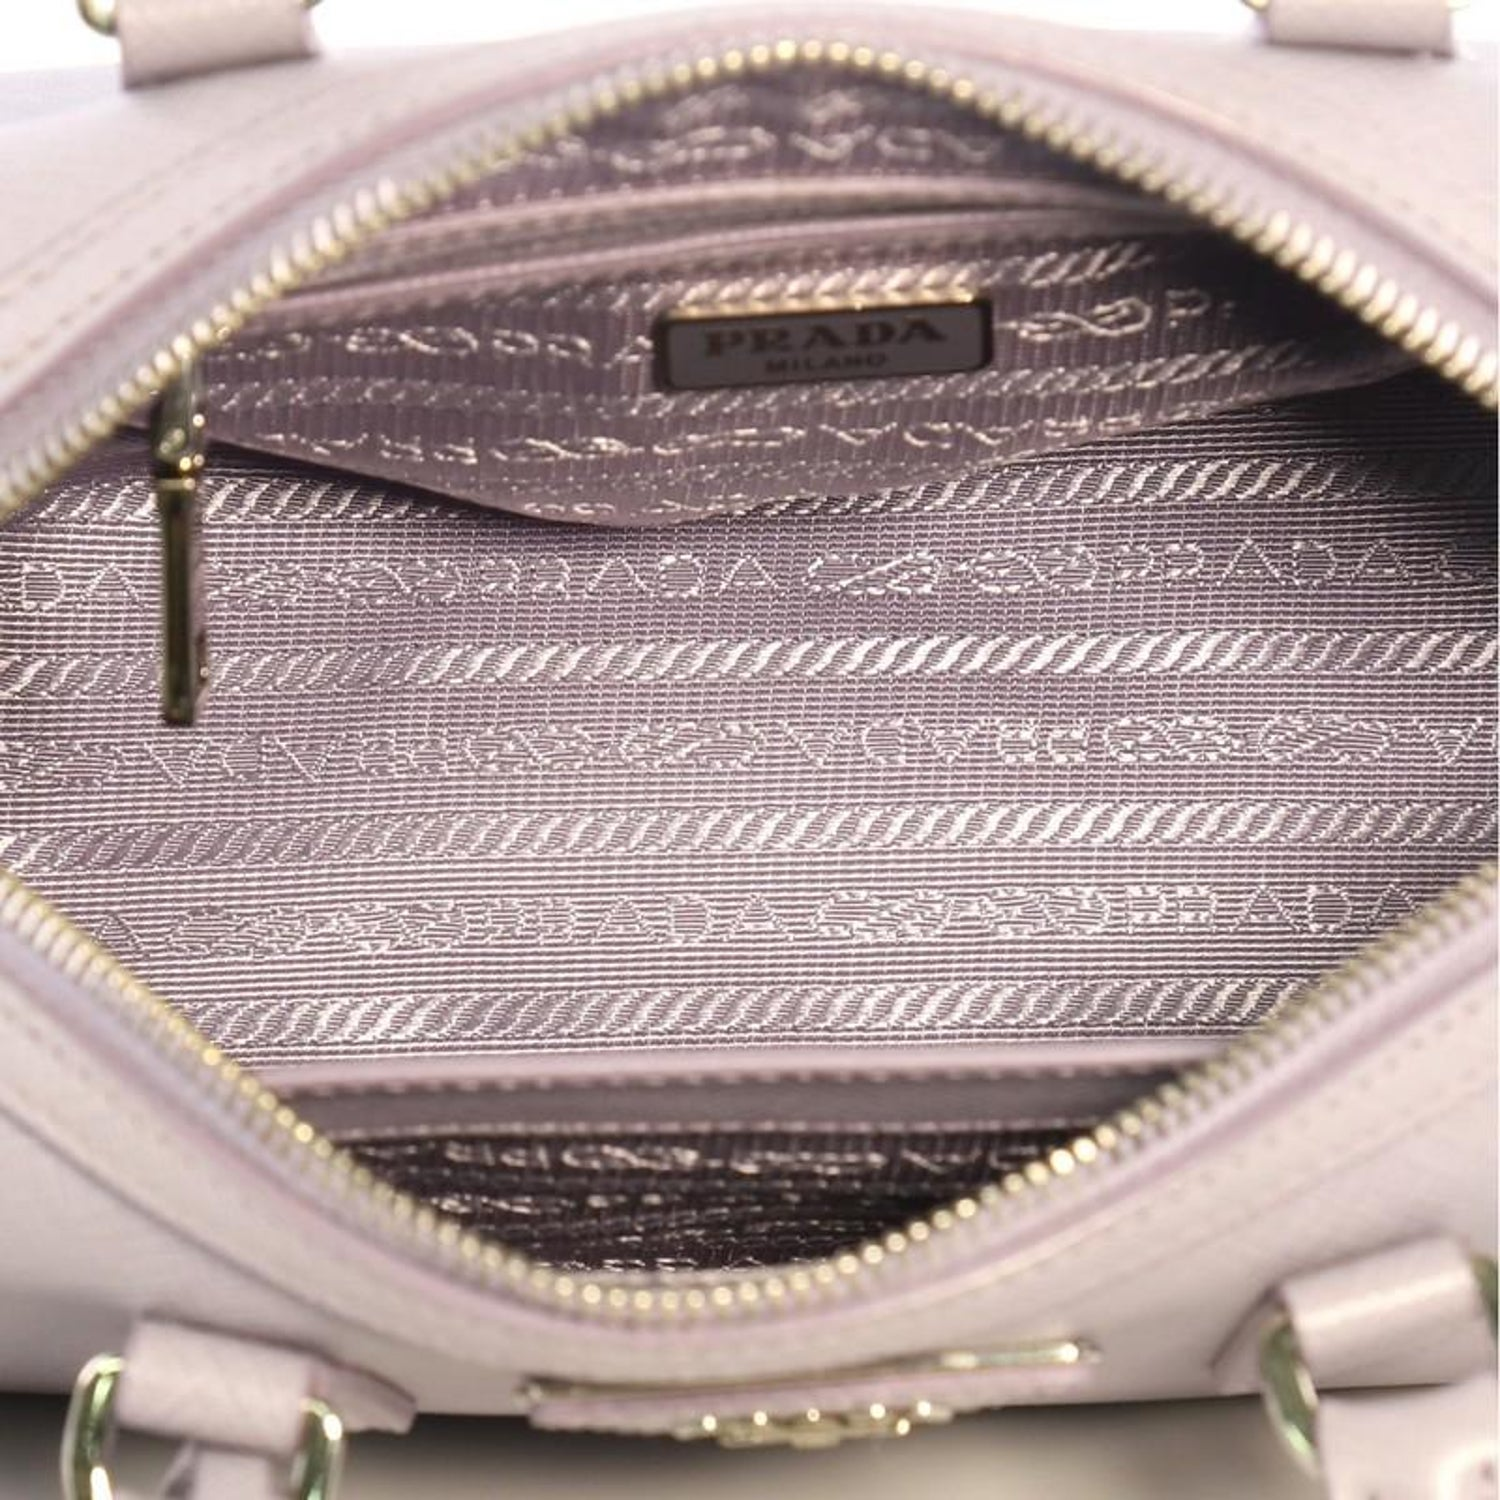 77b8e7463b7b Prada Lux Convertible Boston Bag Saffiano Leather Small For Sale at 1stdibs